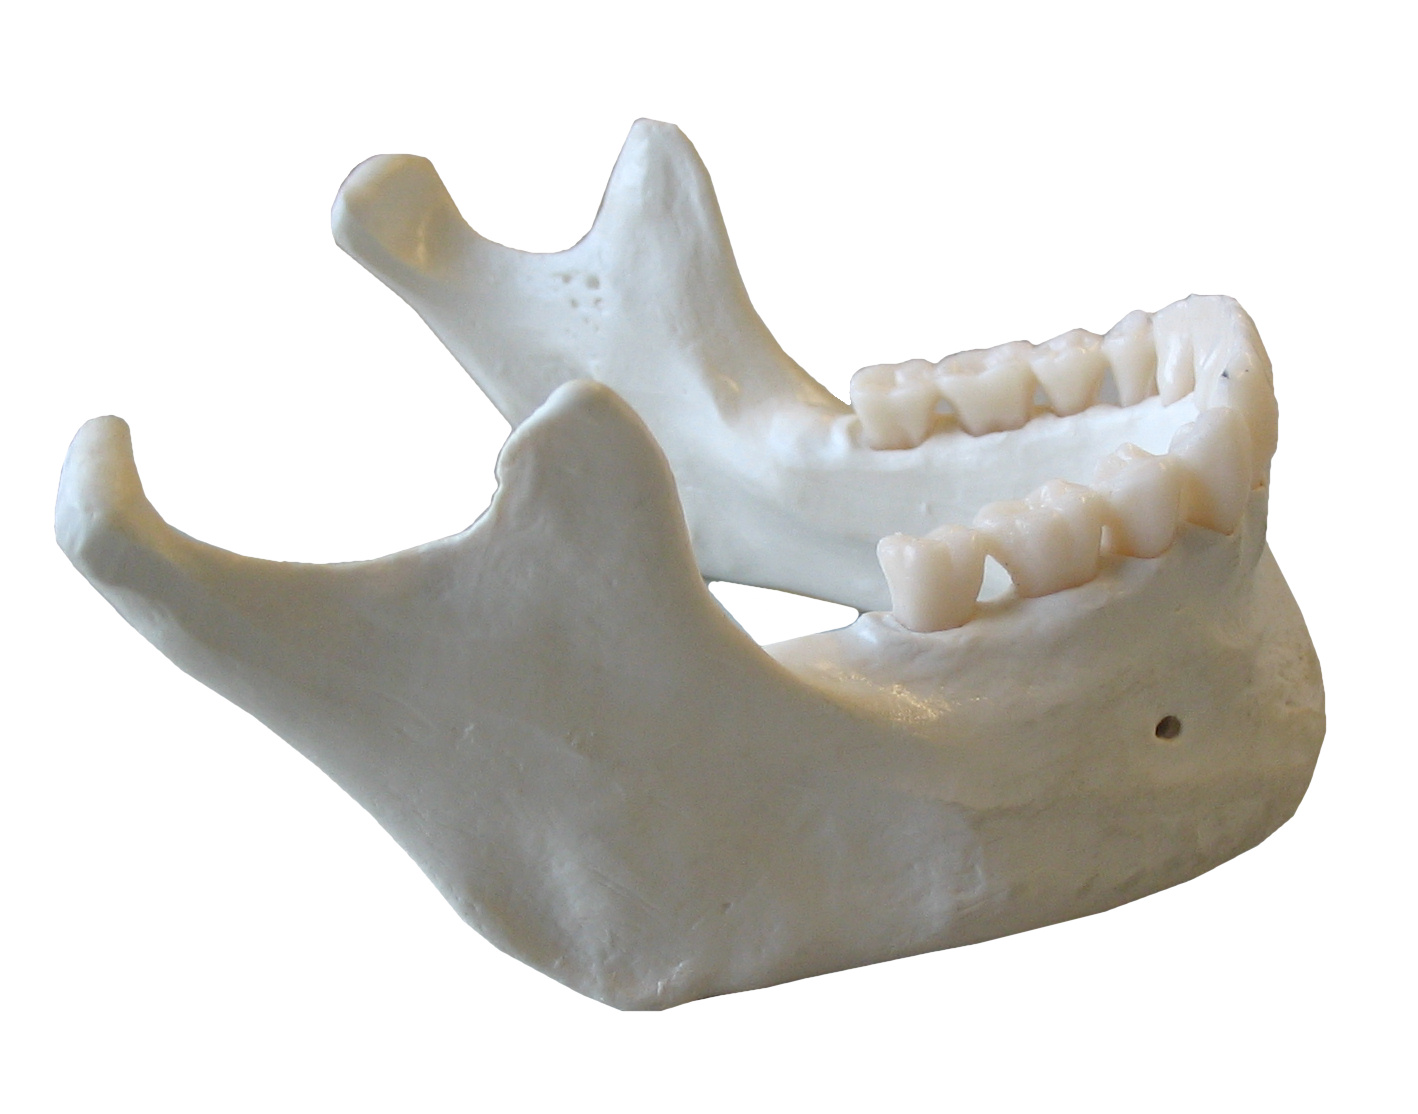 Mandible - Wikipedia